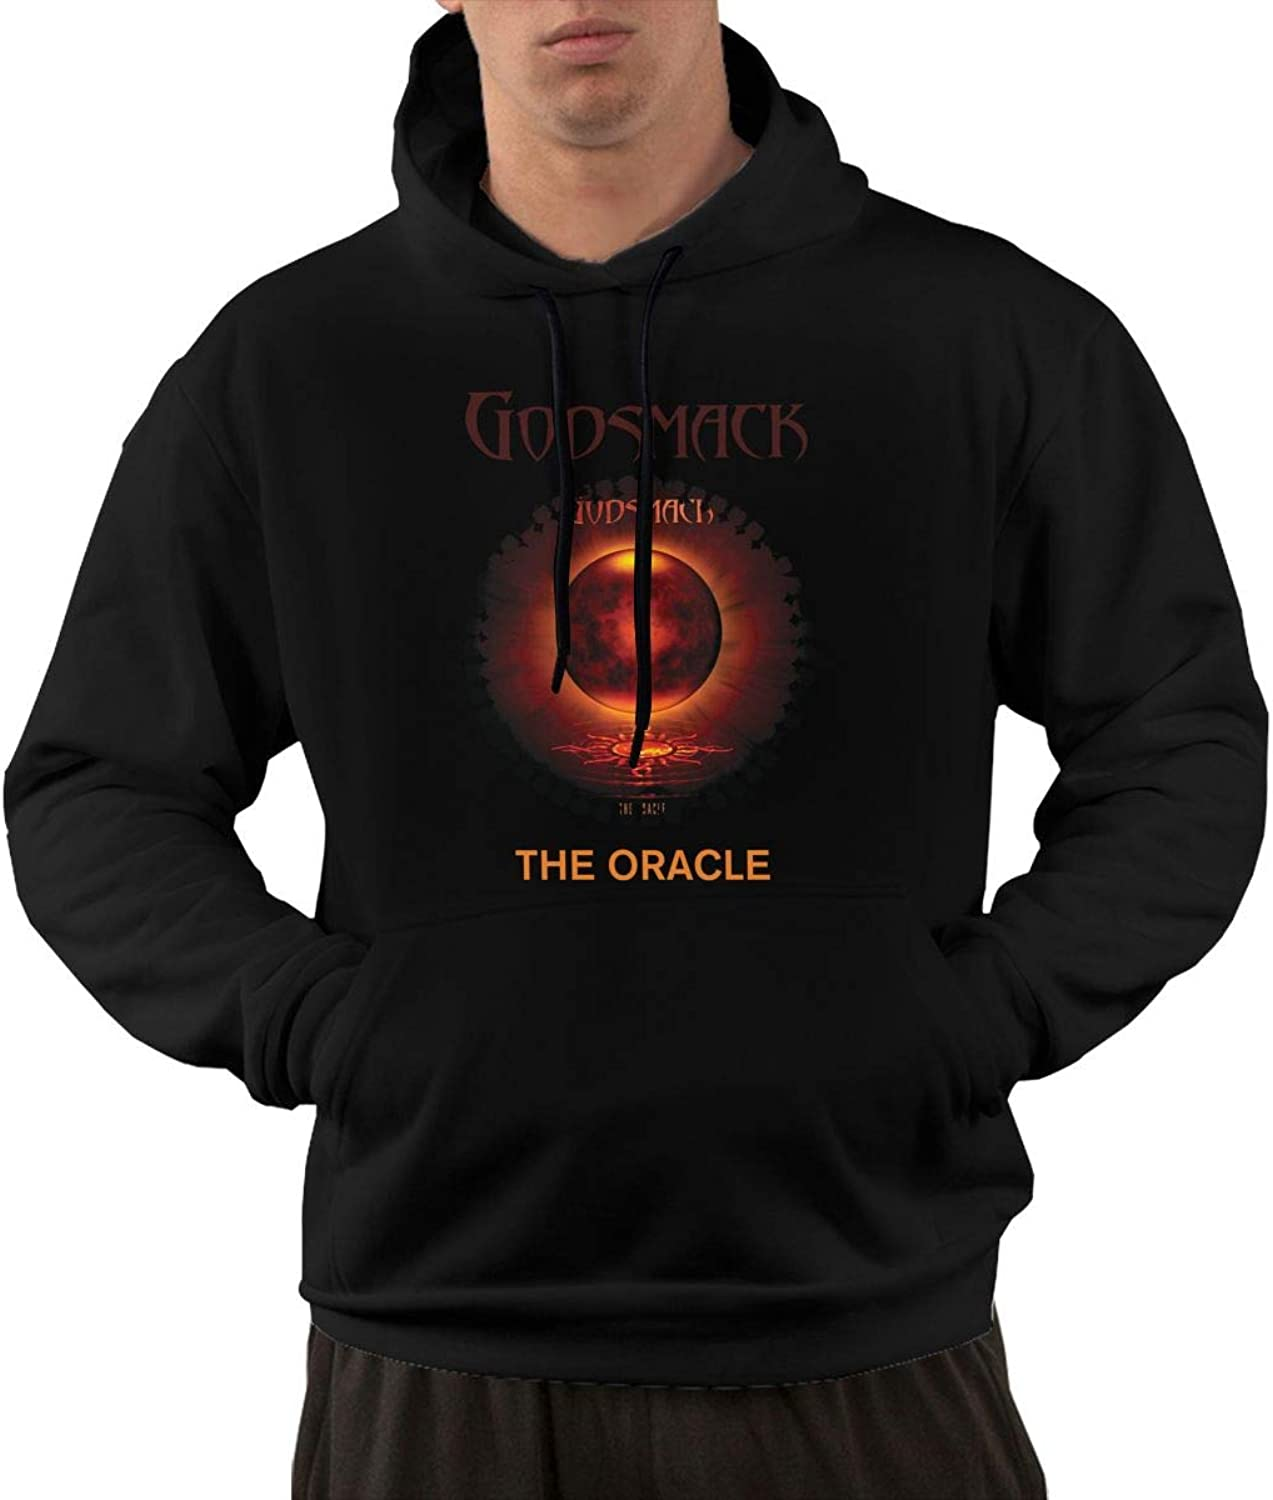 NolanO Godsmack The Oracle Mens Hoodies Sweatshirt With Pocket Black